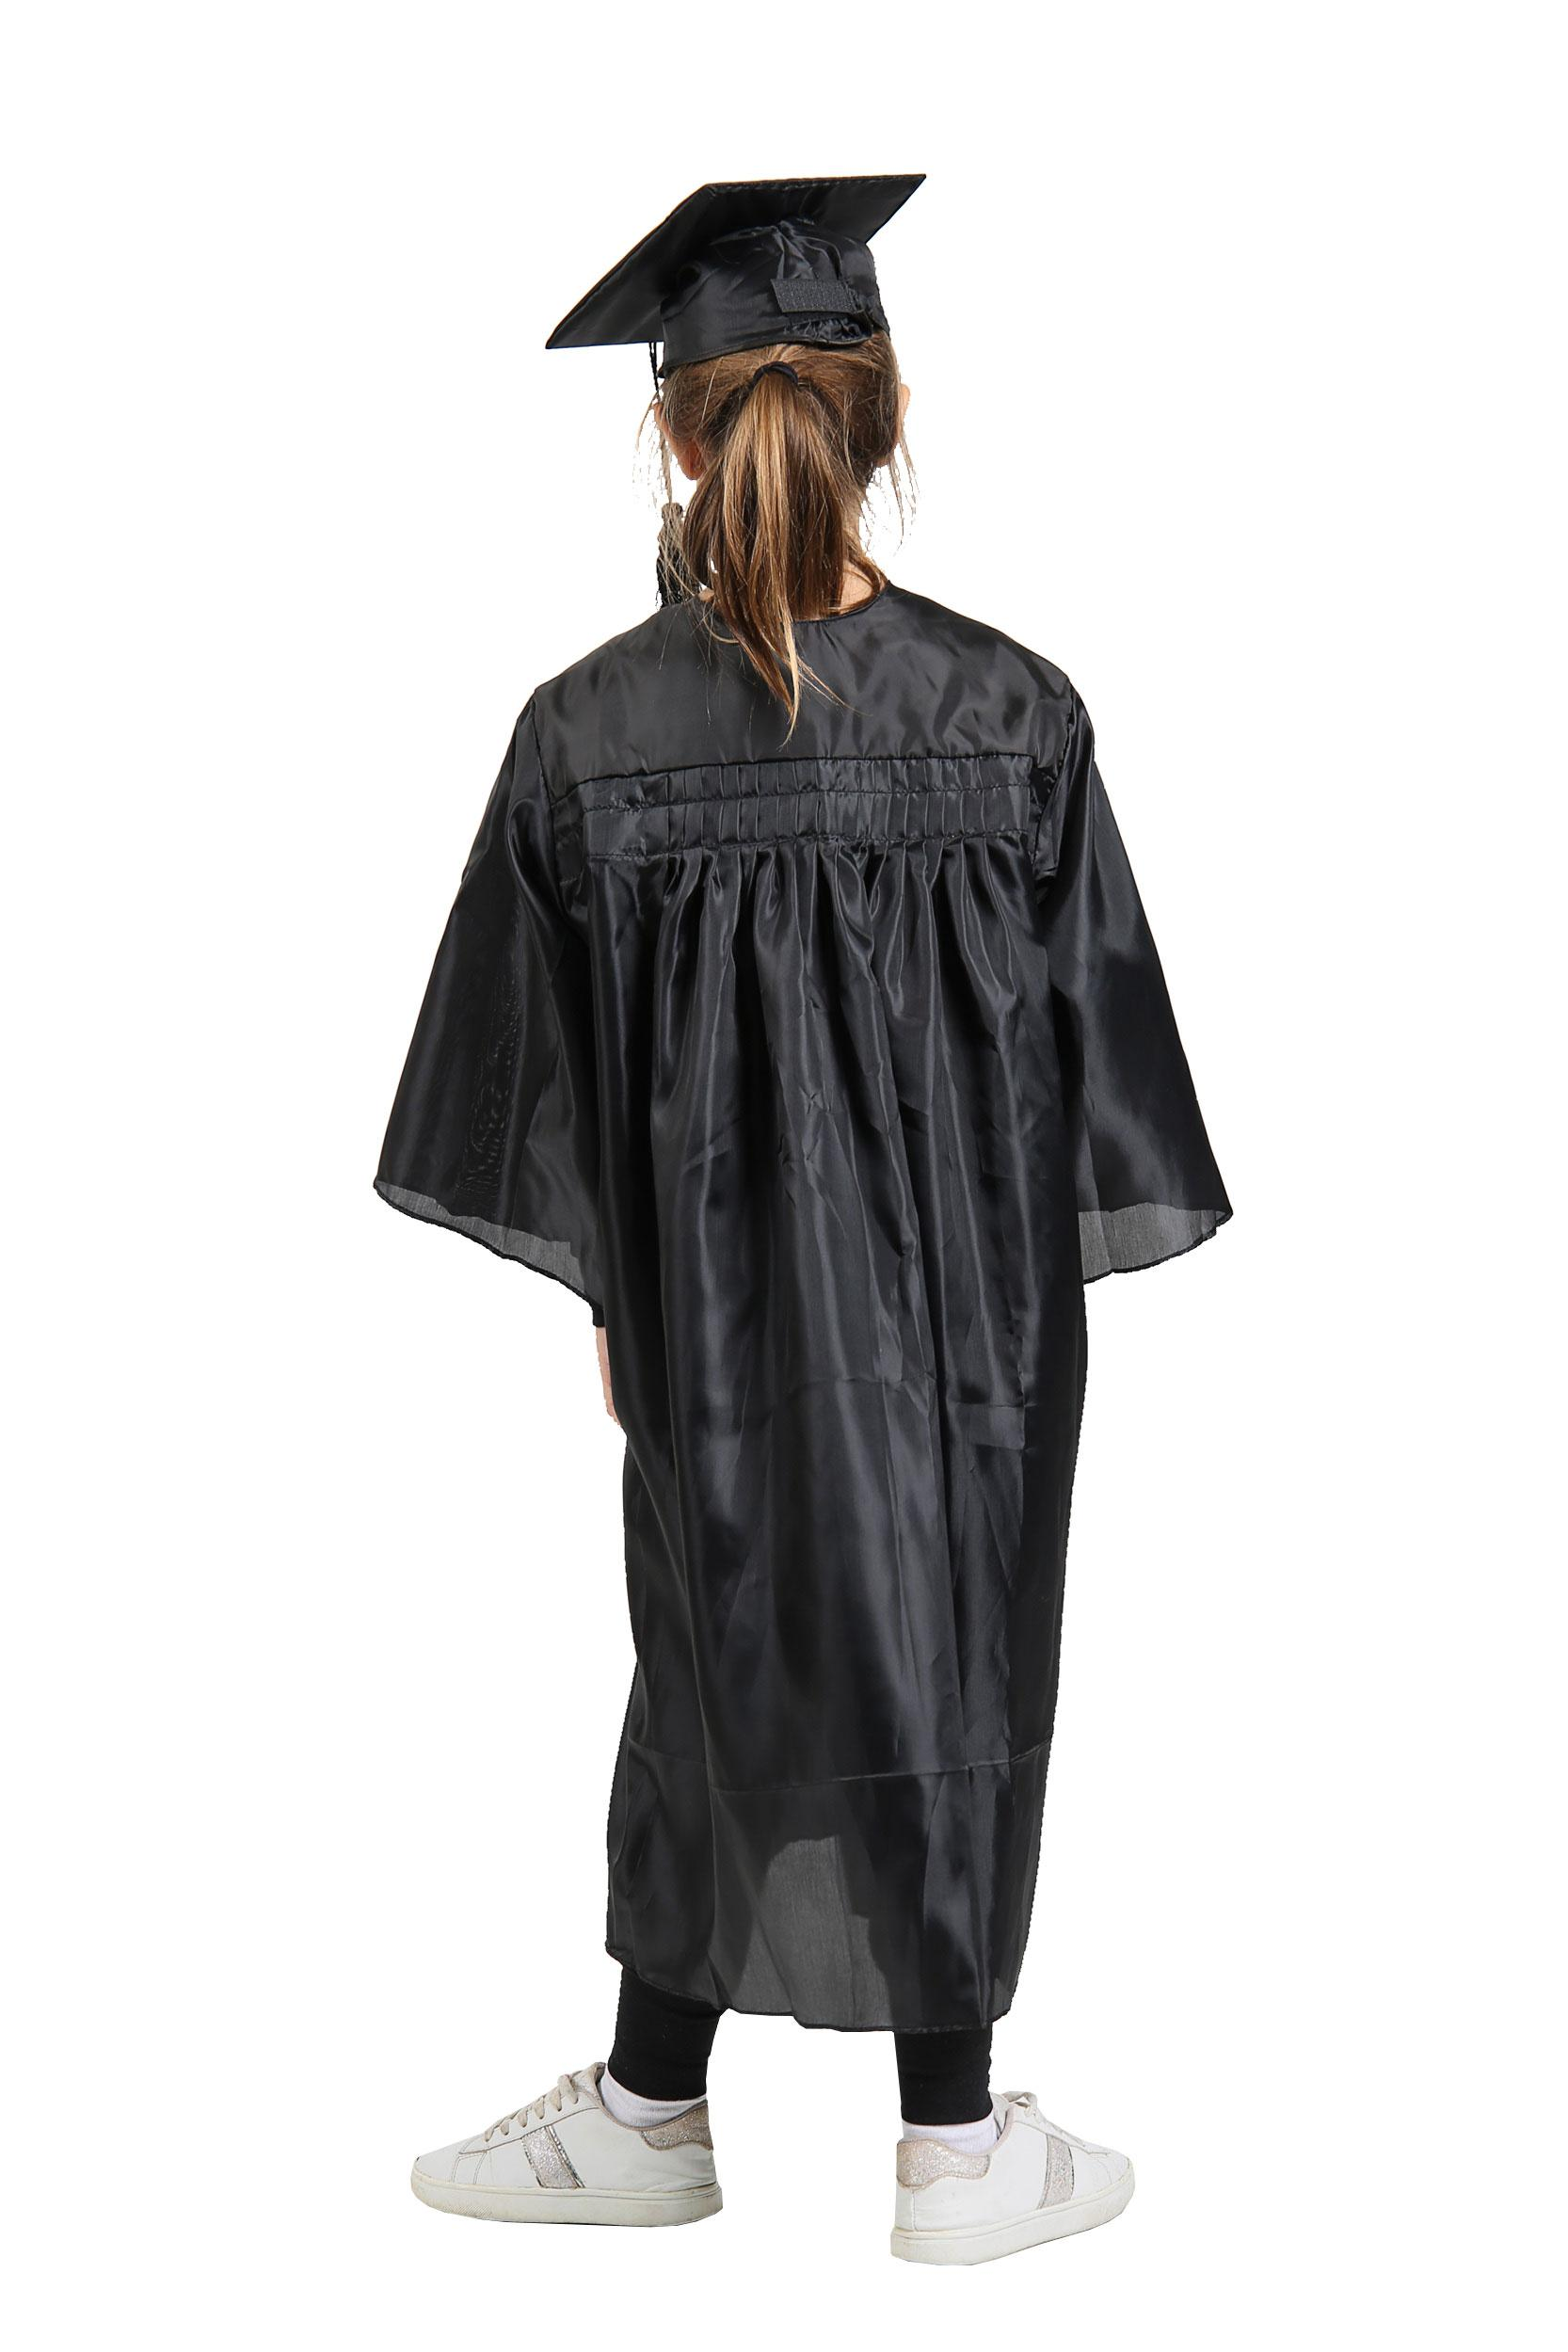 Children's Primary School Graduation Gown and Cap